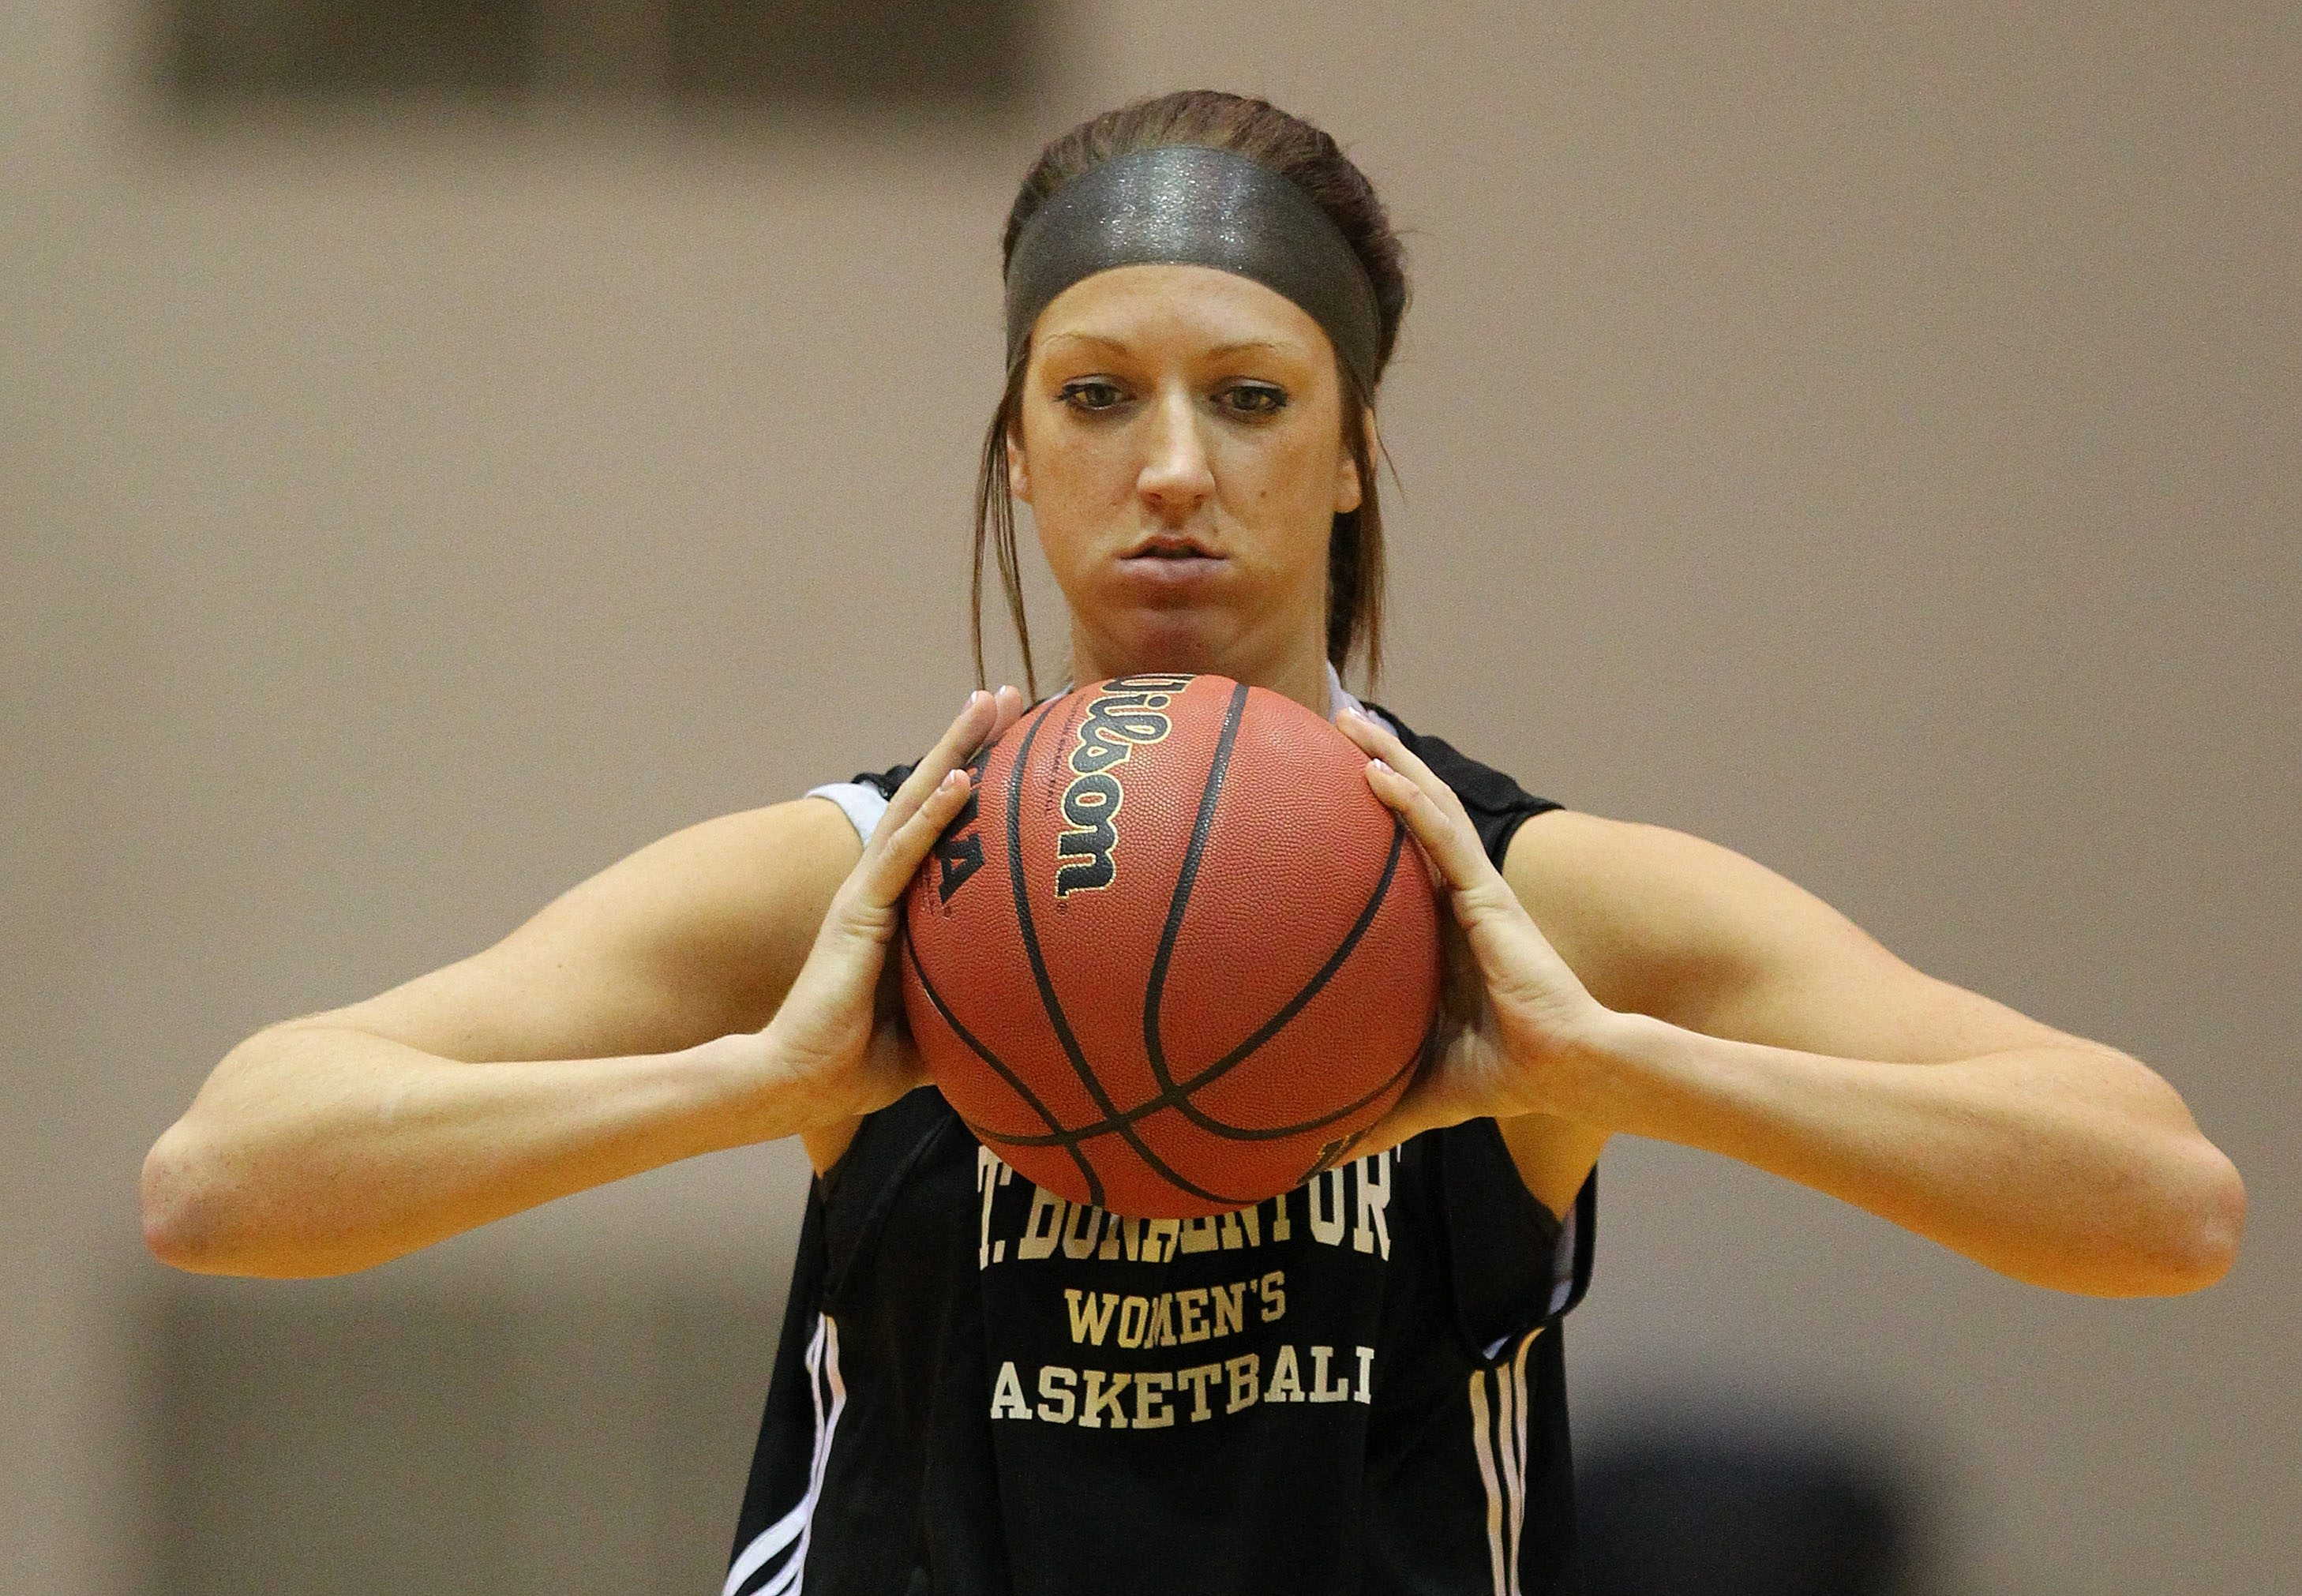 Lancaster native Katie Healy leads the returning cast at St. Bonaventure in scoring and rebounding.